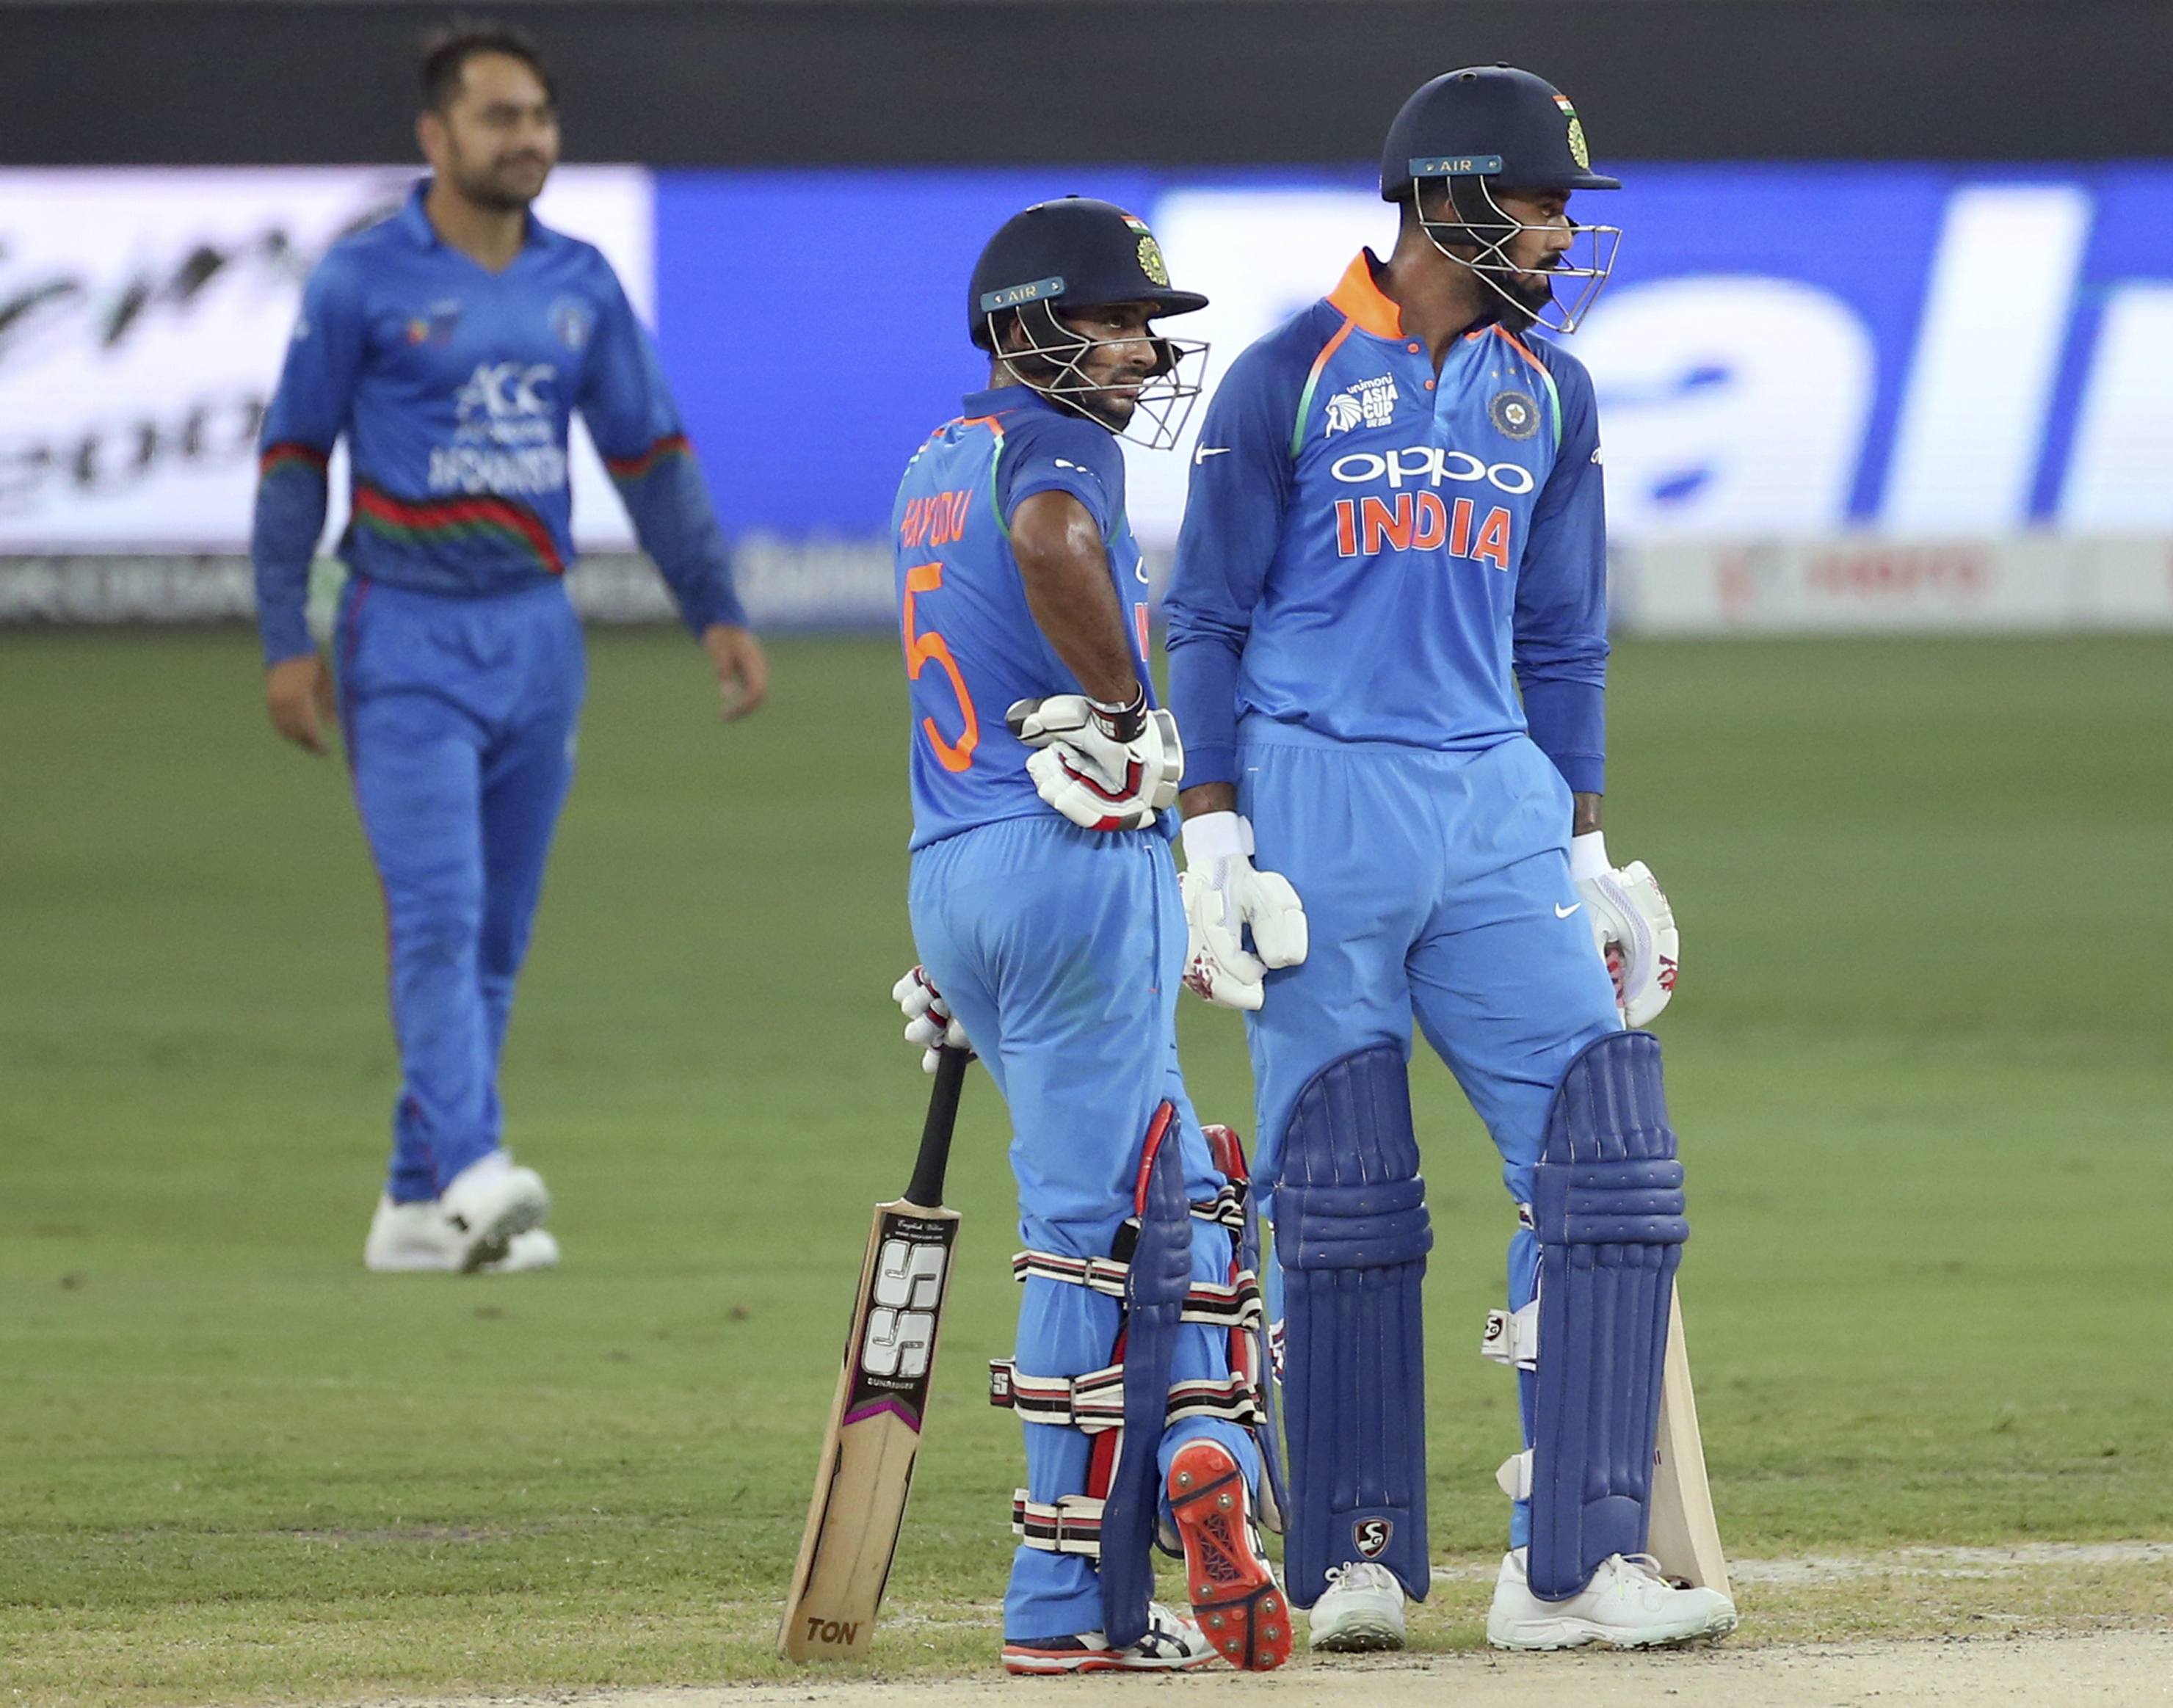 India's Lokesh Rahul, right, and teammate Ambati Rayudu stand together during the one day international cricket match of Asia Cup between India and Afghanistan in Dubai, United Arab Emirates - AP